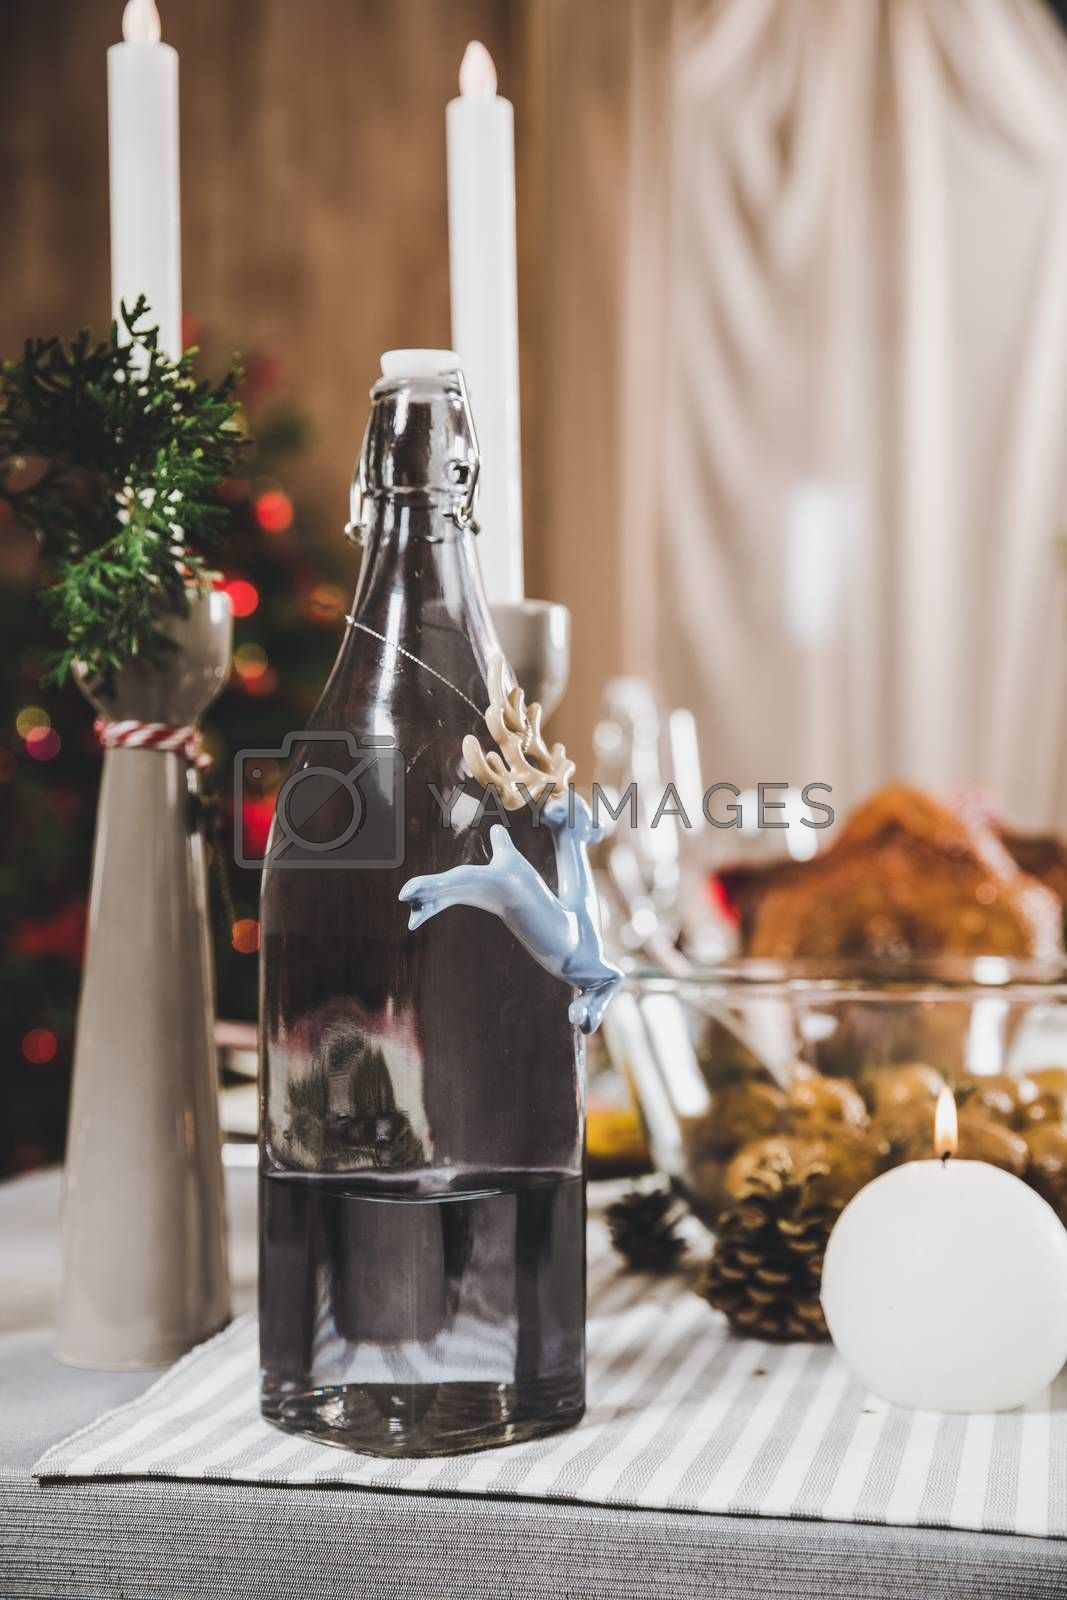 Close-up view of decorated bottle and Christmas decorations with burning candles on festive table